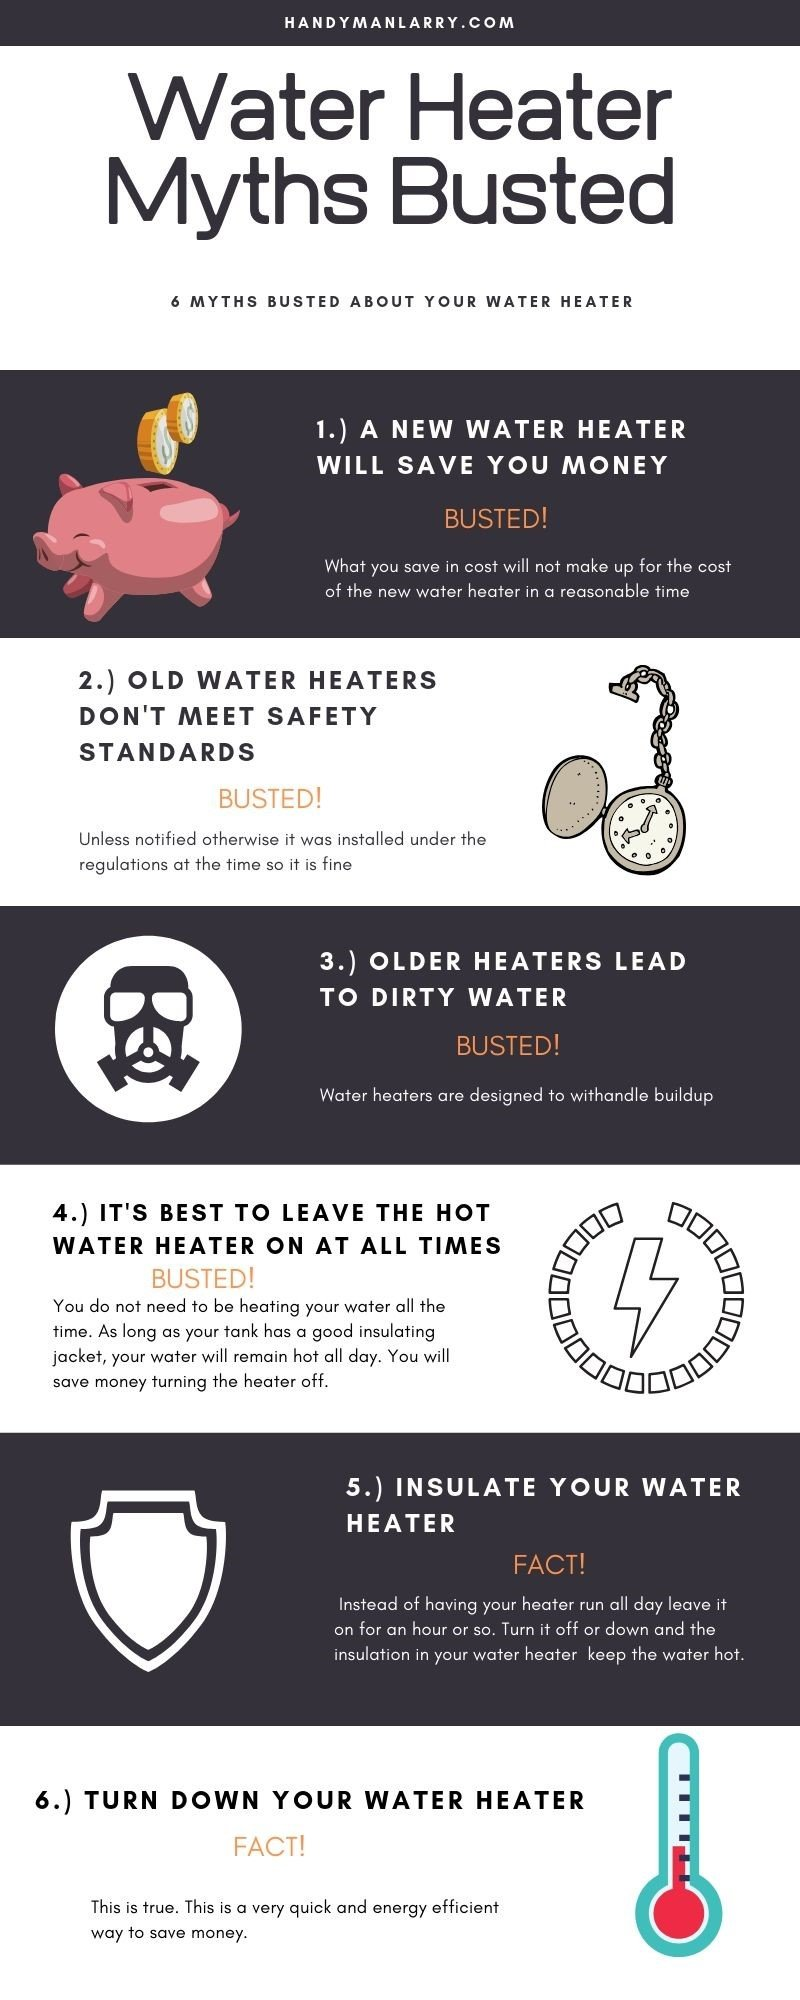 water heater myths busted